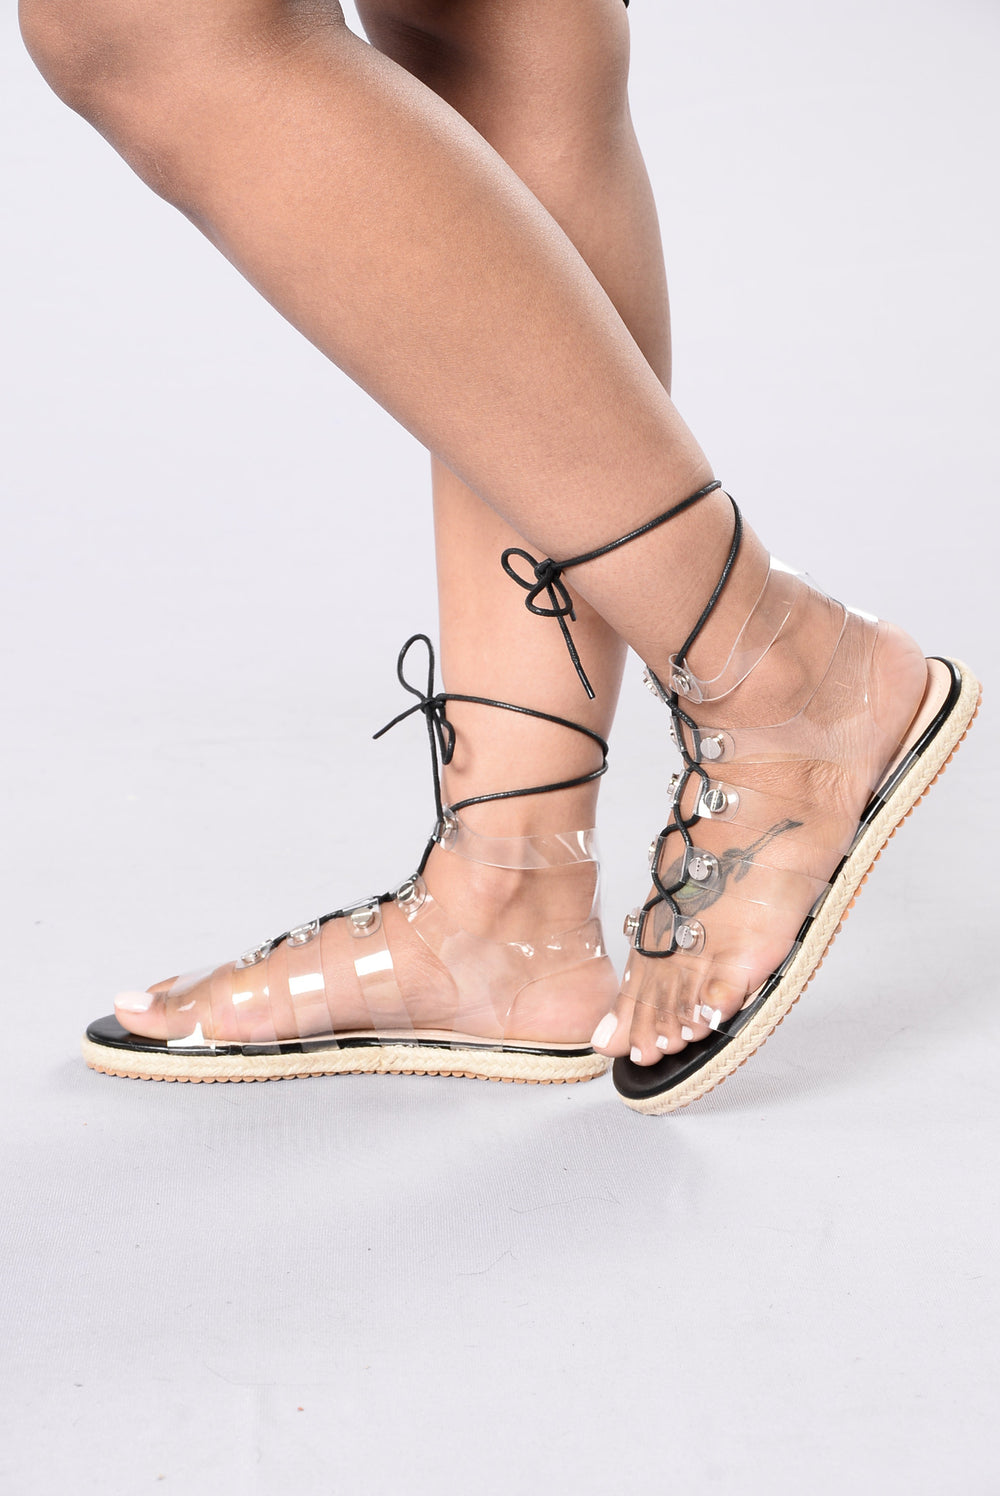 Loop Hole Sandal - Transparent